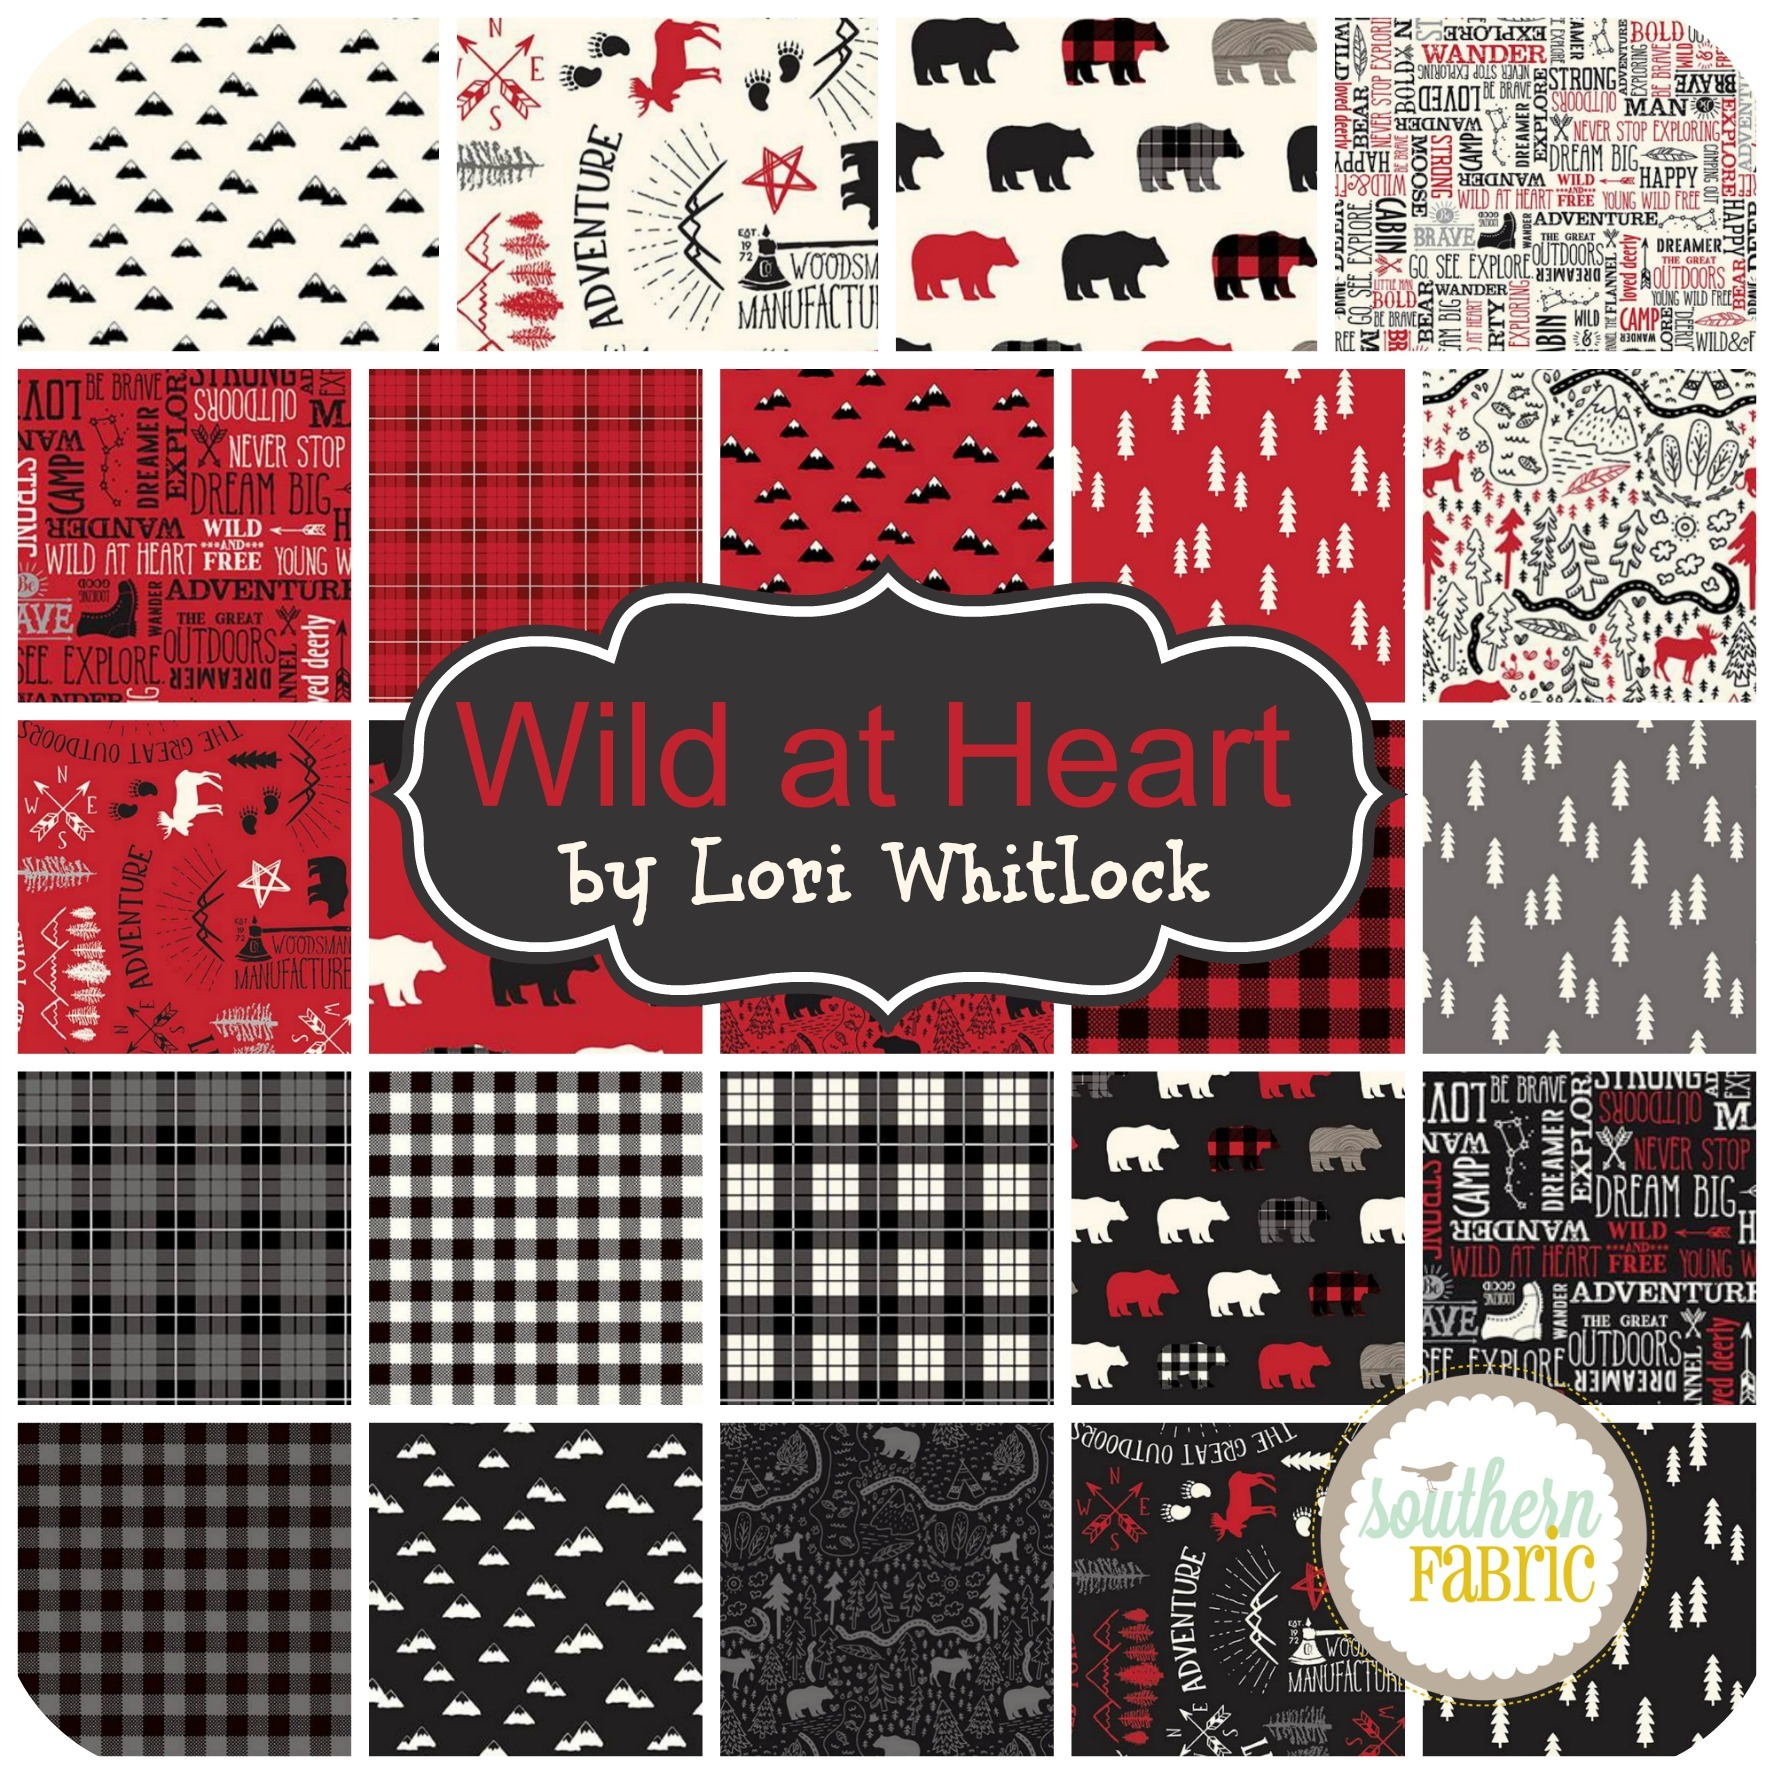 Wild at Heart by Lori Whitlock